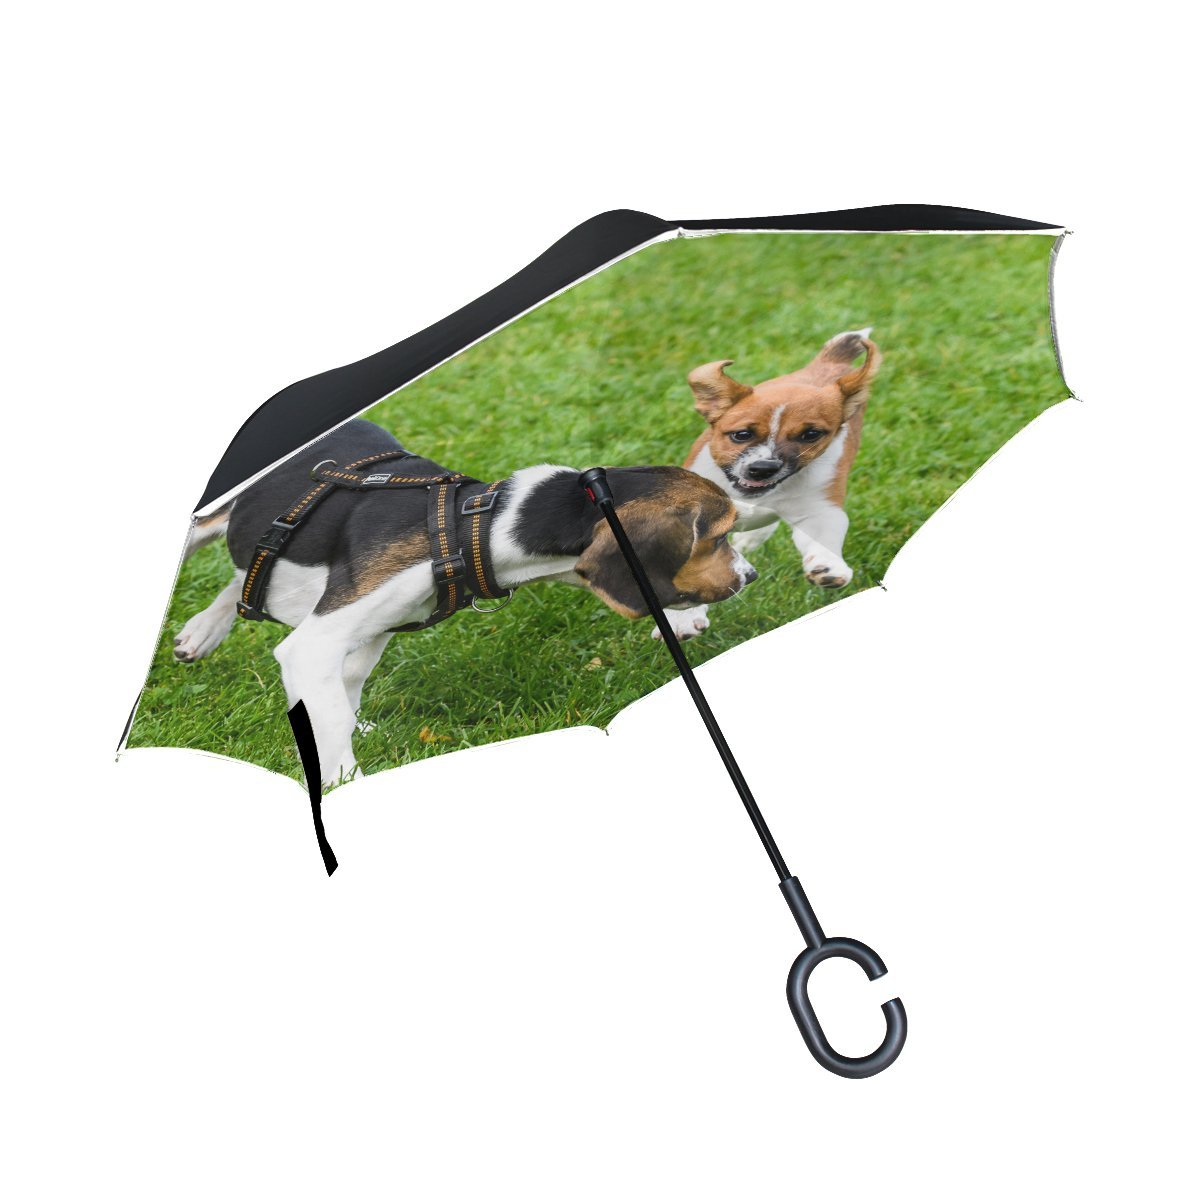 JOCHUAN Animal Dog Affenpinscher Brown Blackandwhite Mix Fluffy Puppy Pet Inverted Umbrella Large Double Layer Outdoor Rain Sun Car Reversible Umbrella